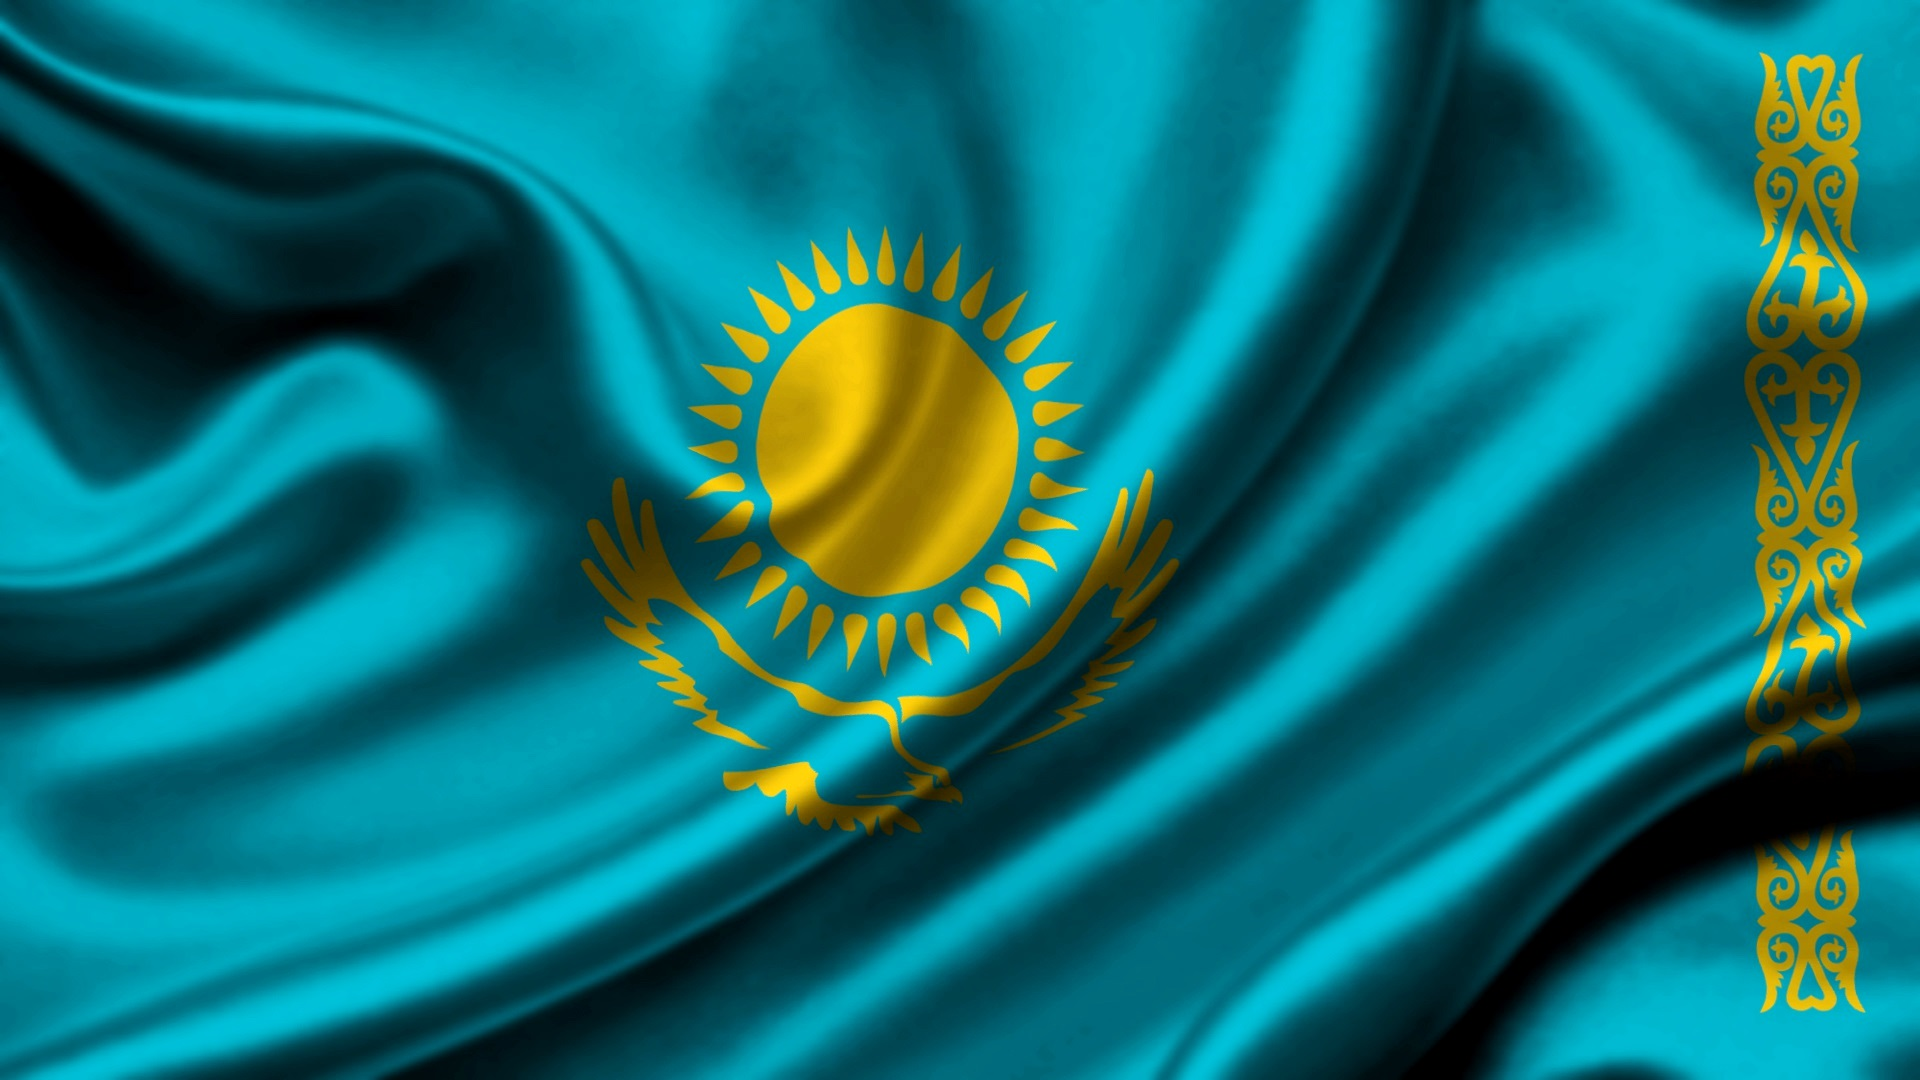 2017 was the year of Kazakhstan's success on the world stage